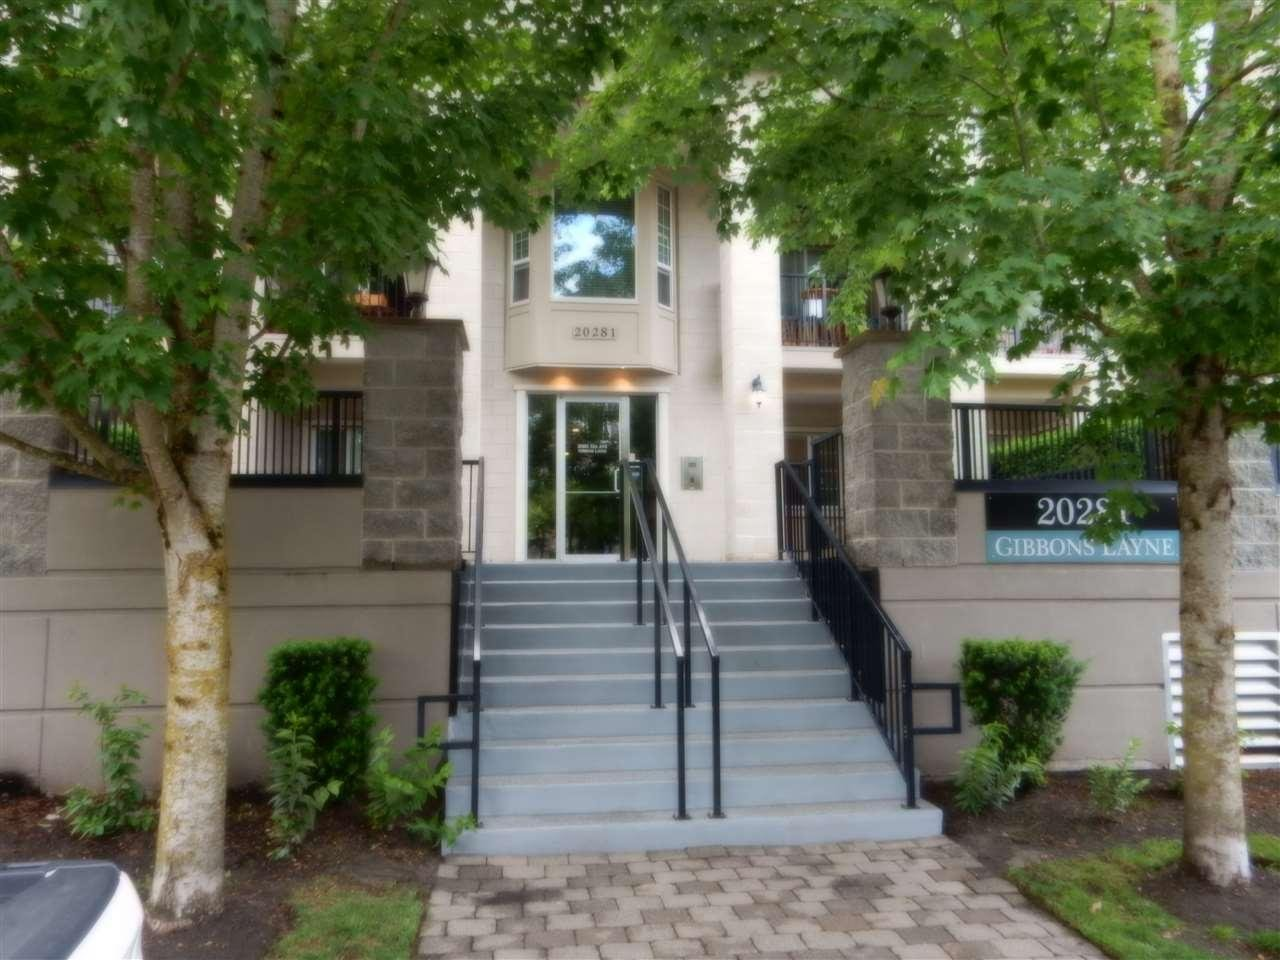 R2063859 - 208 20281 53A AVENUE, Langley City, Langley, BC - Apartment Unit